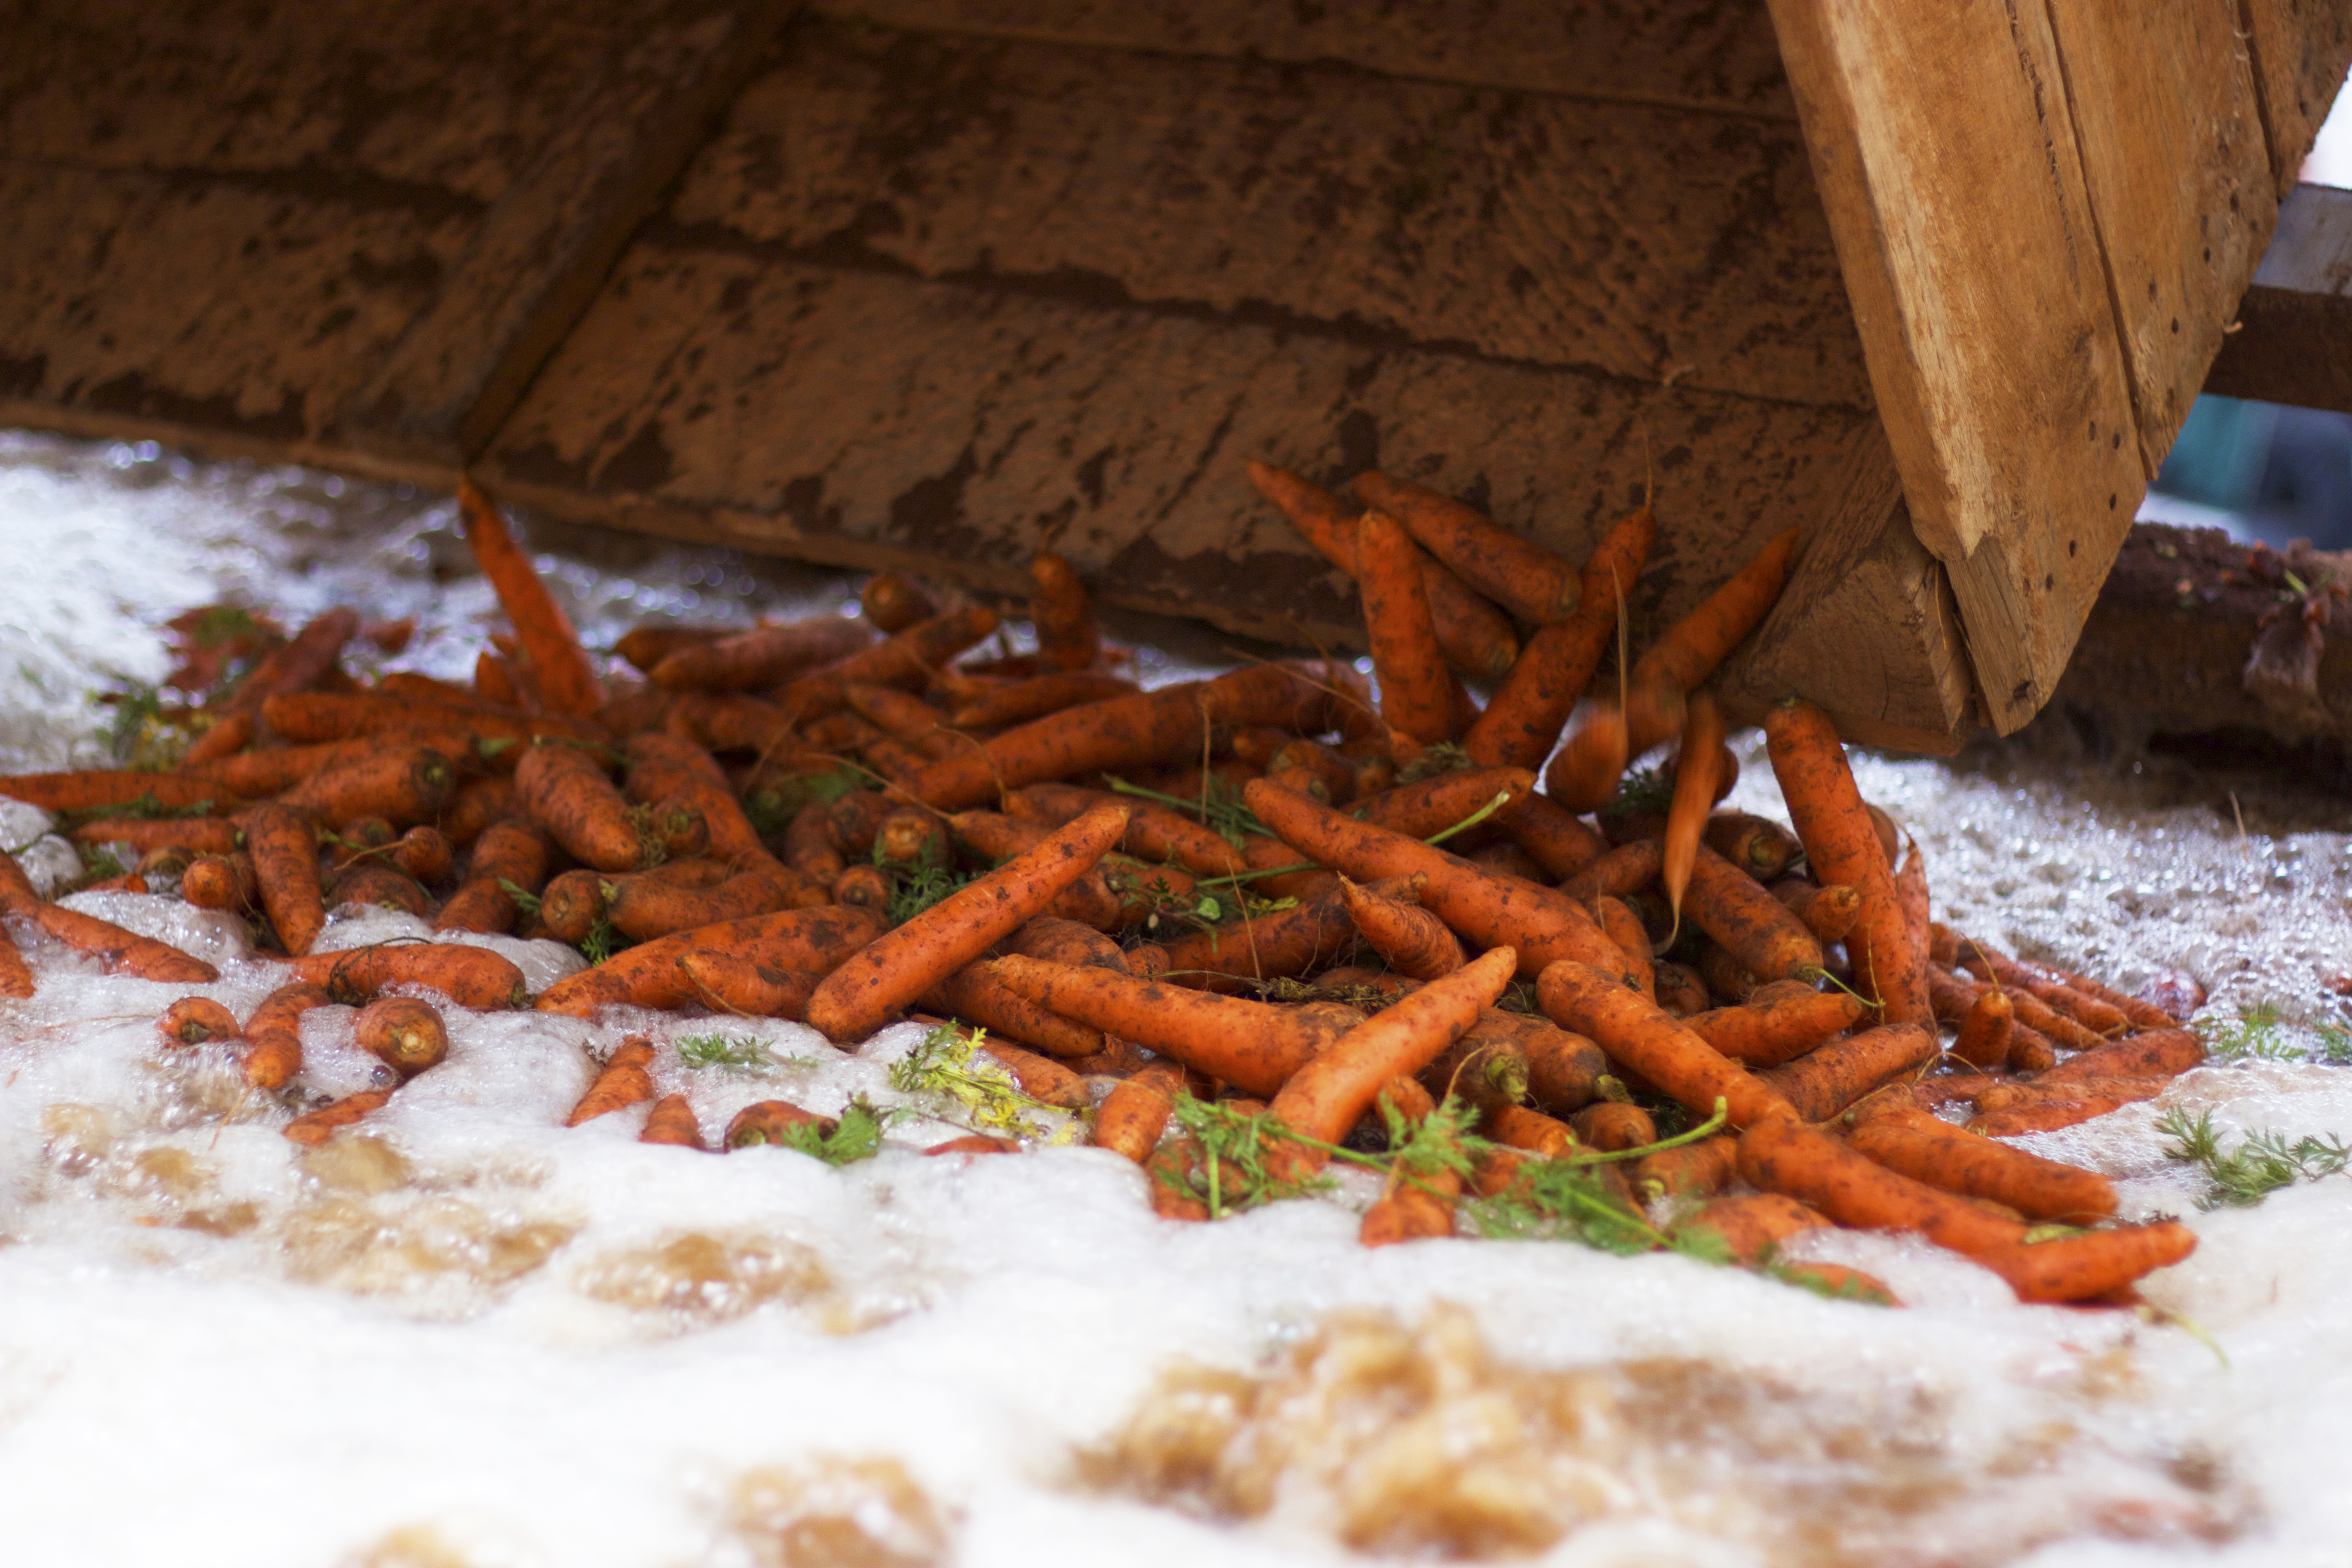 Large carrot grower and packer values collaborative approach